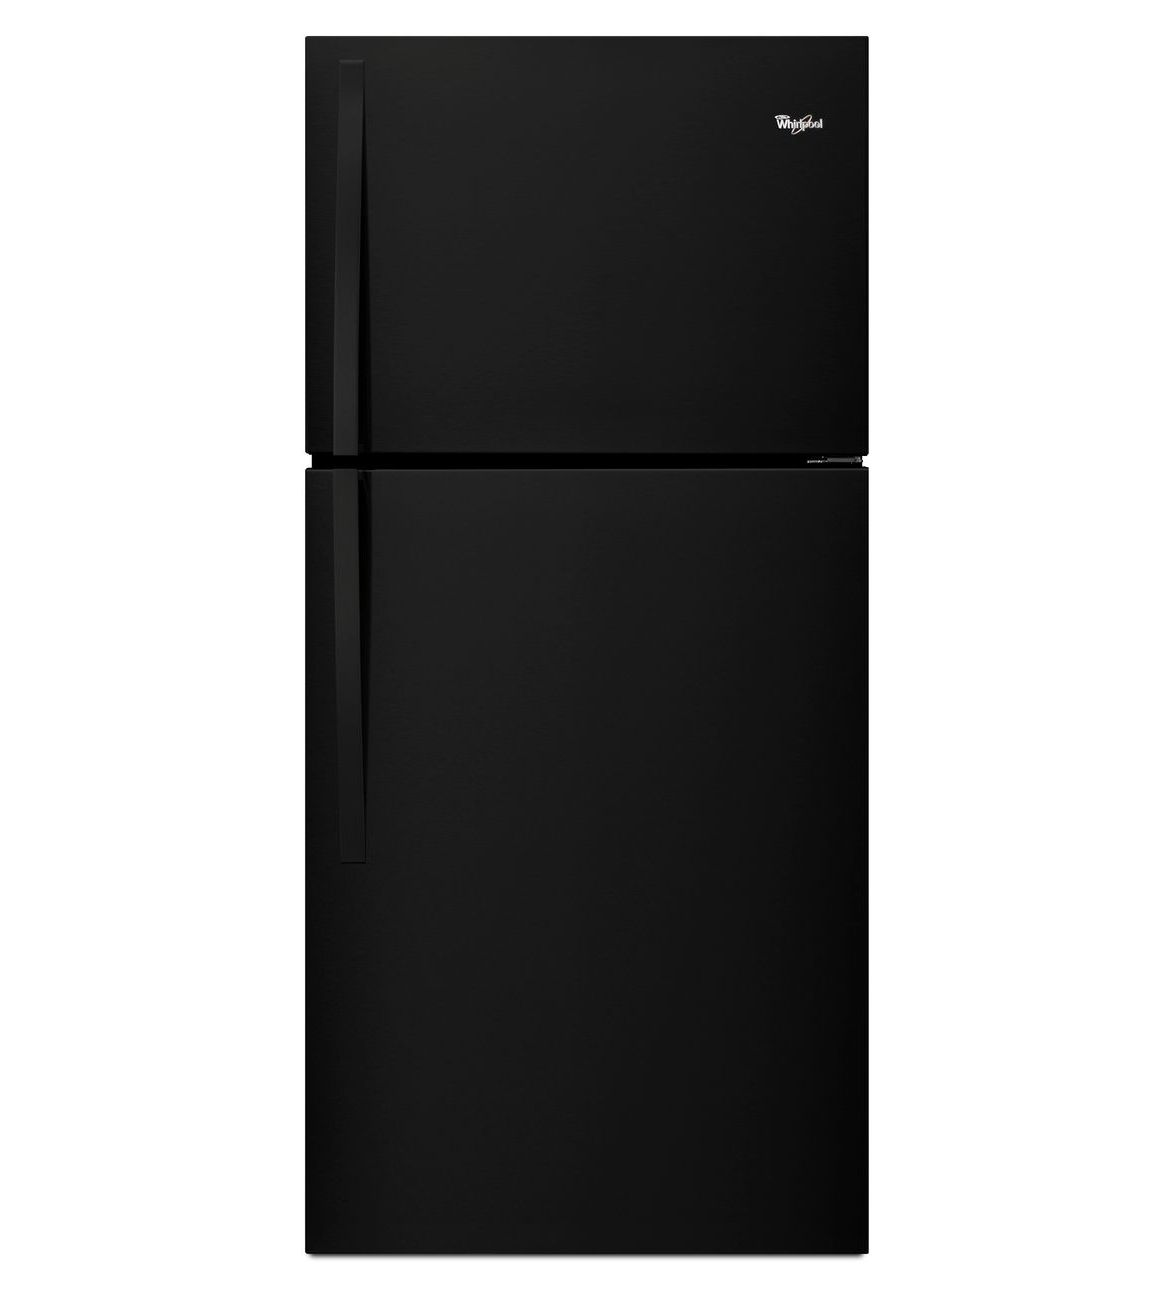 30-inch Wide Top-Freezer Refrigerator with LED Interior Lighting - 19.2 cu. ft.